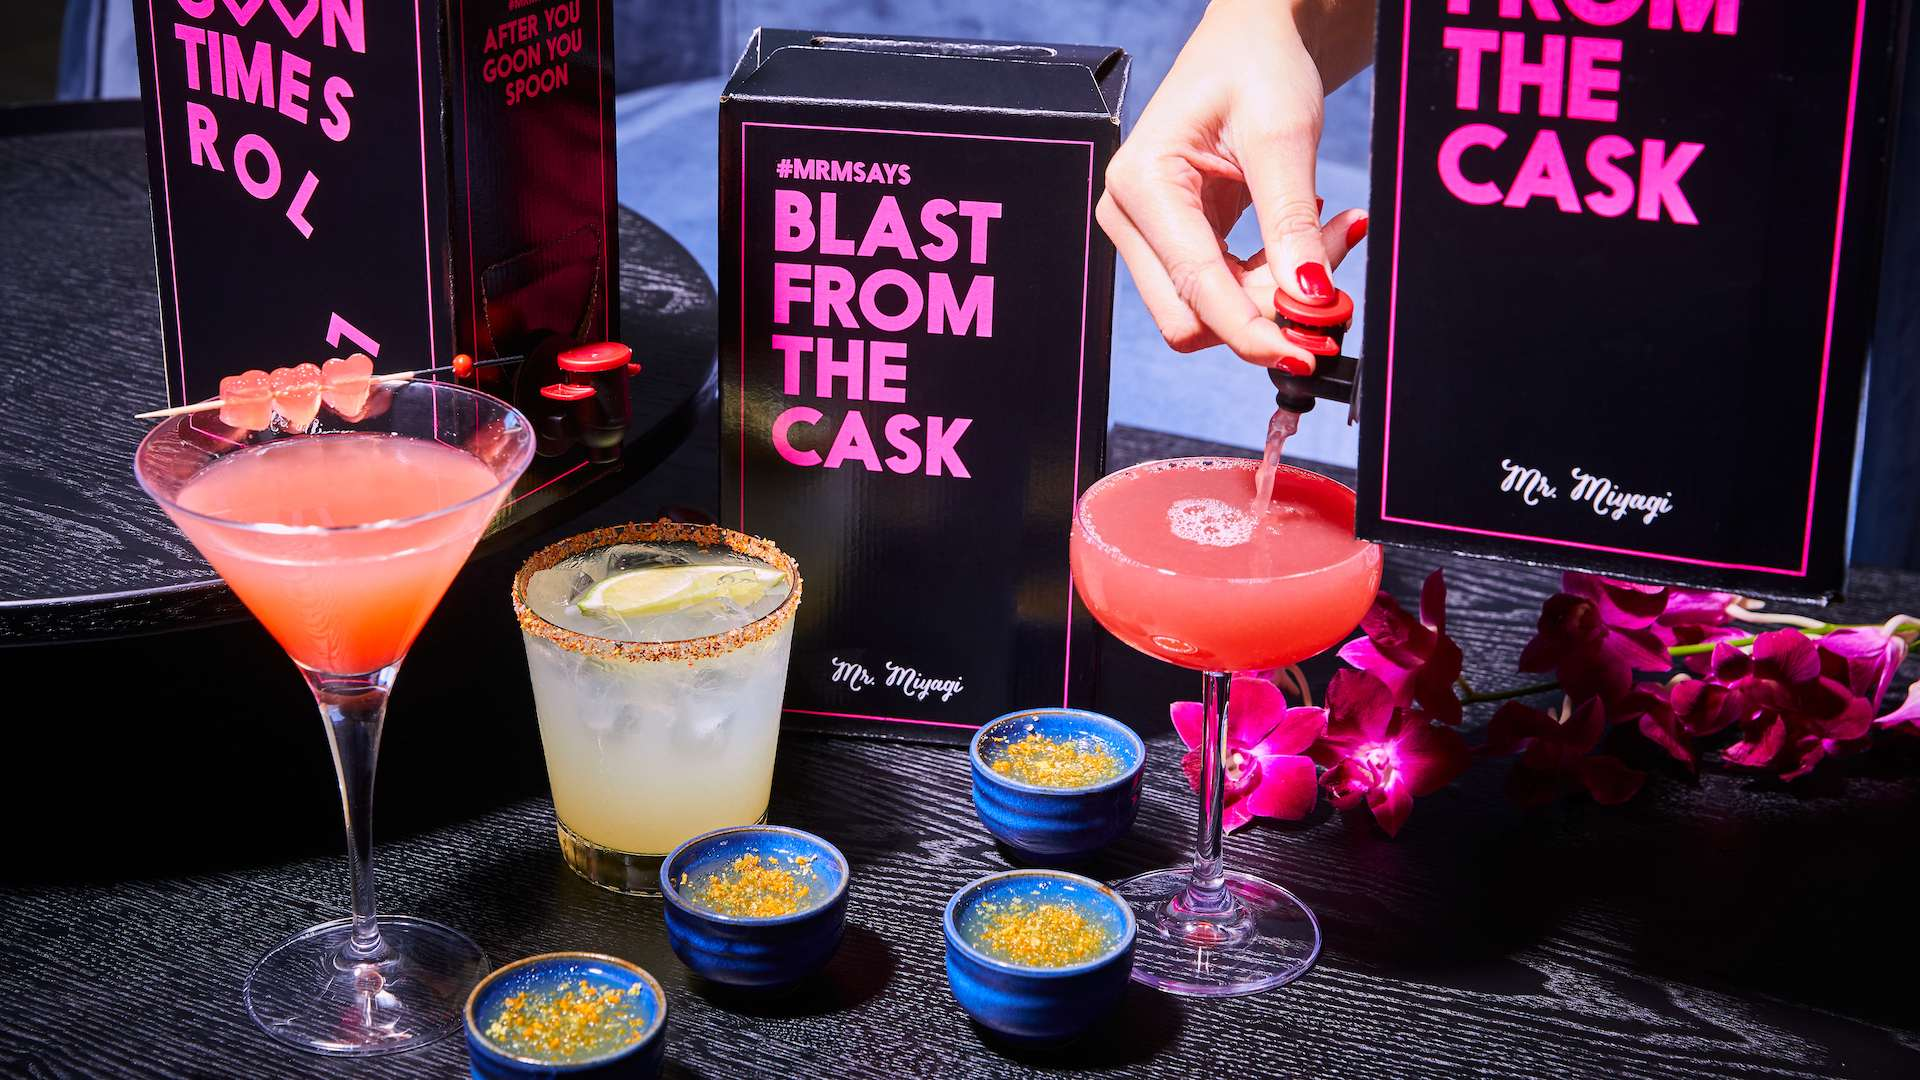 Six of Melbourne's Large-Format Share-Friendly Cocktails to See You Through Picnic Season